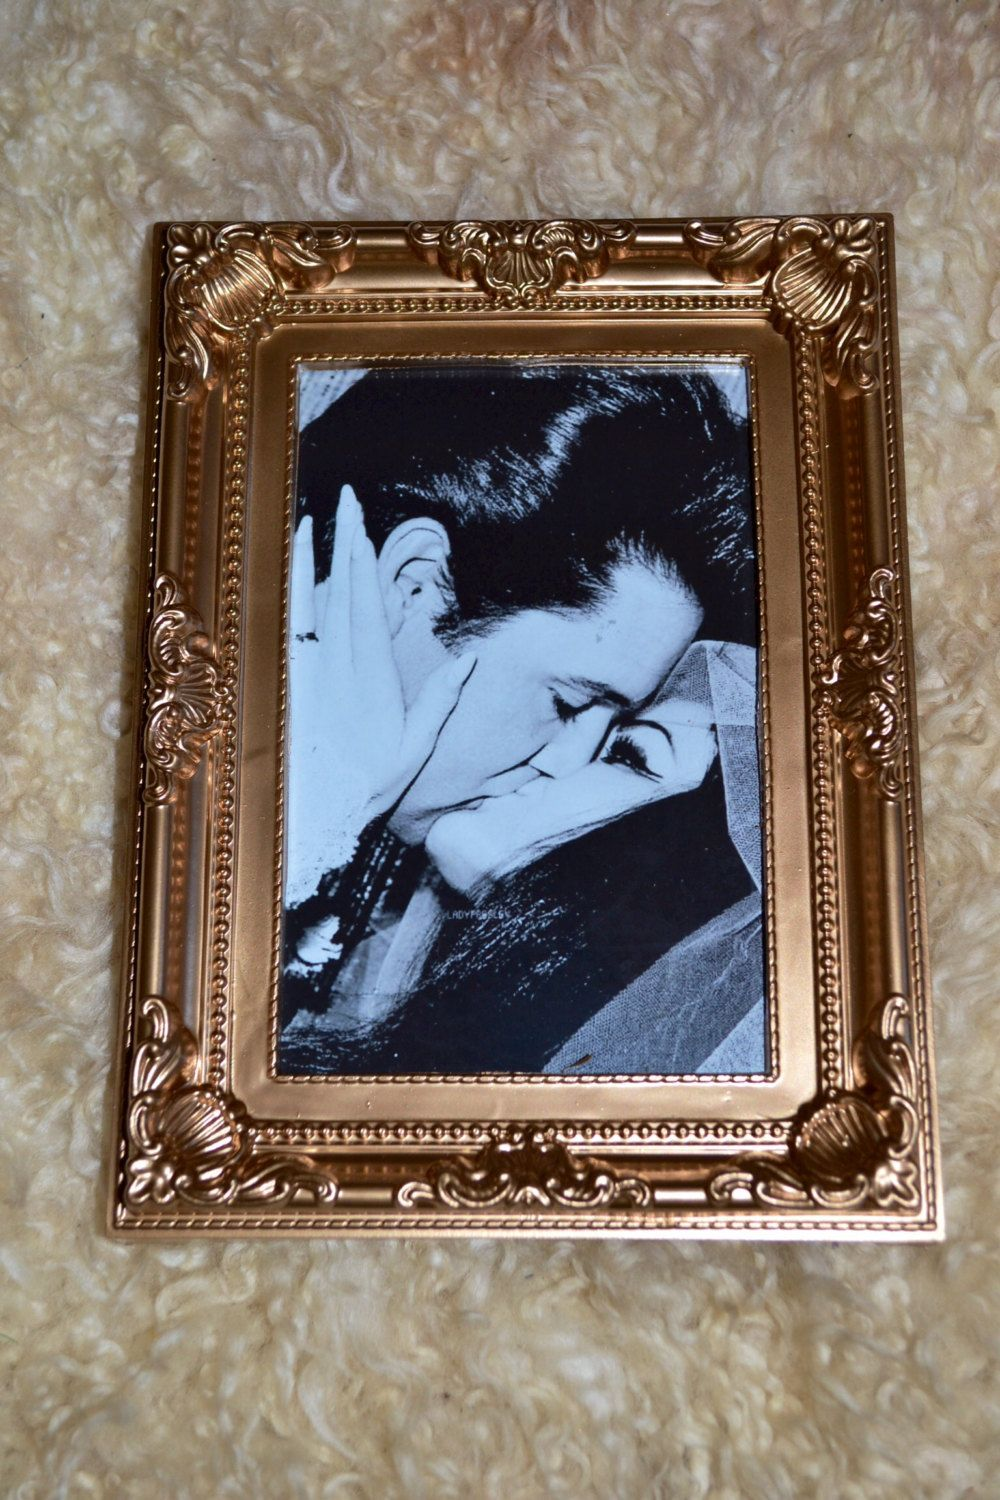 Elvis Presley black & white print in a gold vintage style frame by Honeychile74 on Etsy